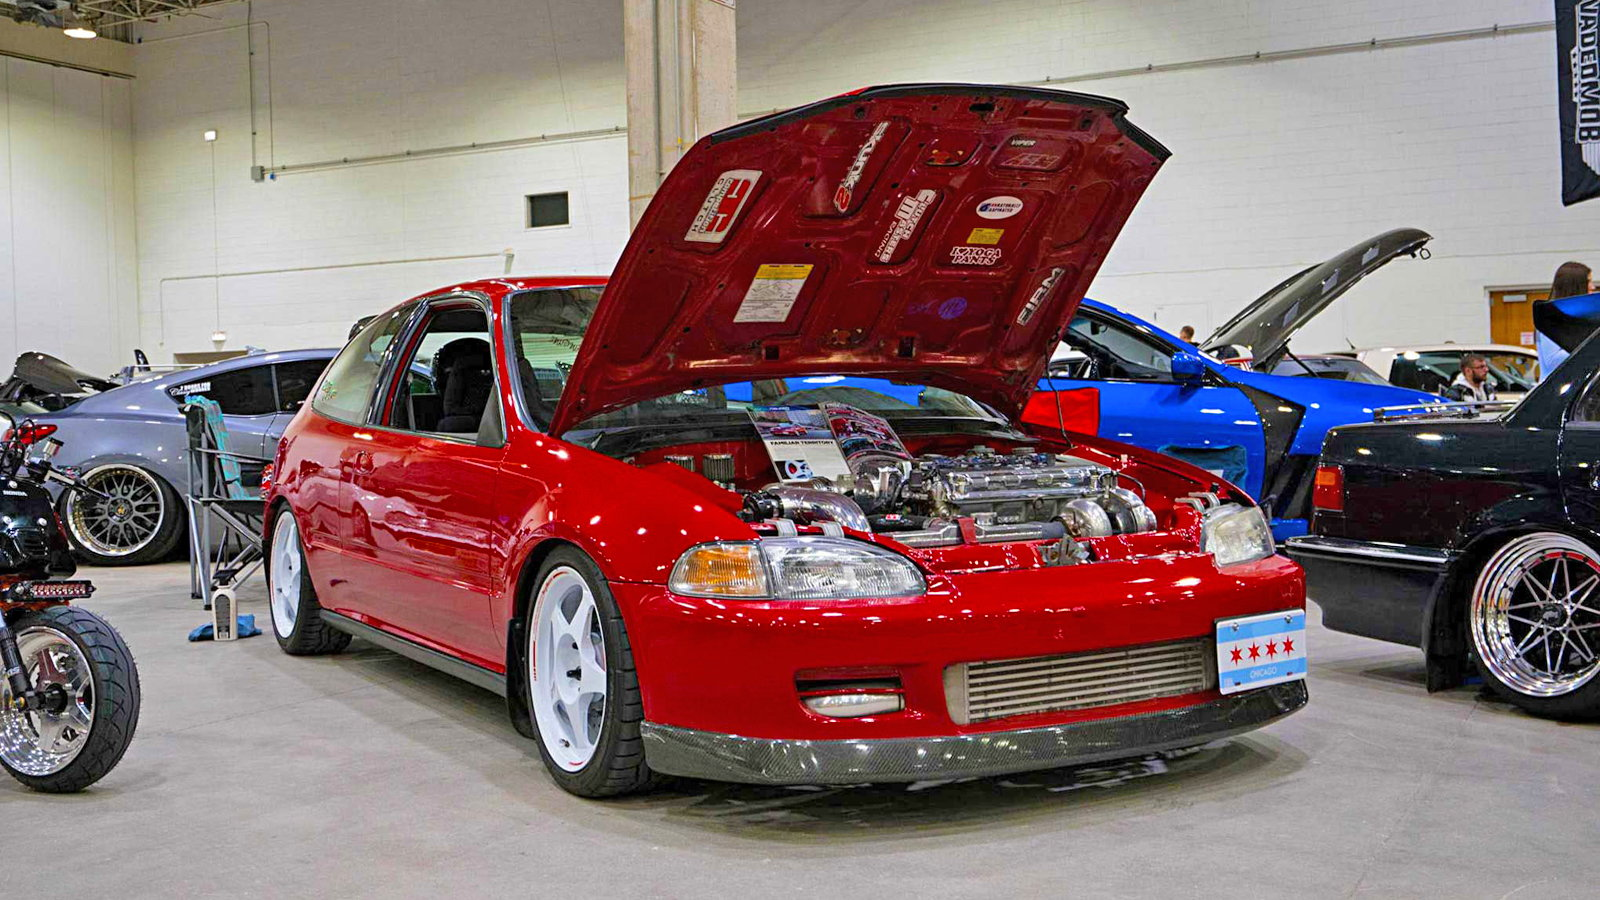 Wekfest Chicago Brings Out the Hondas